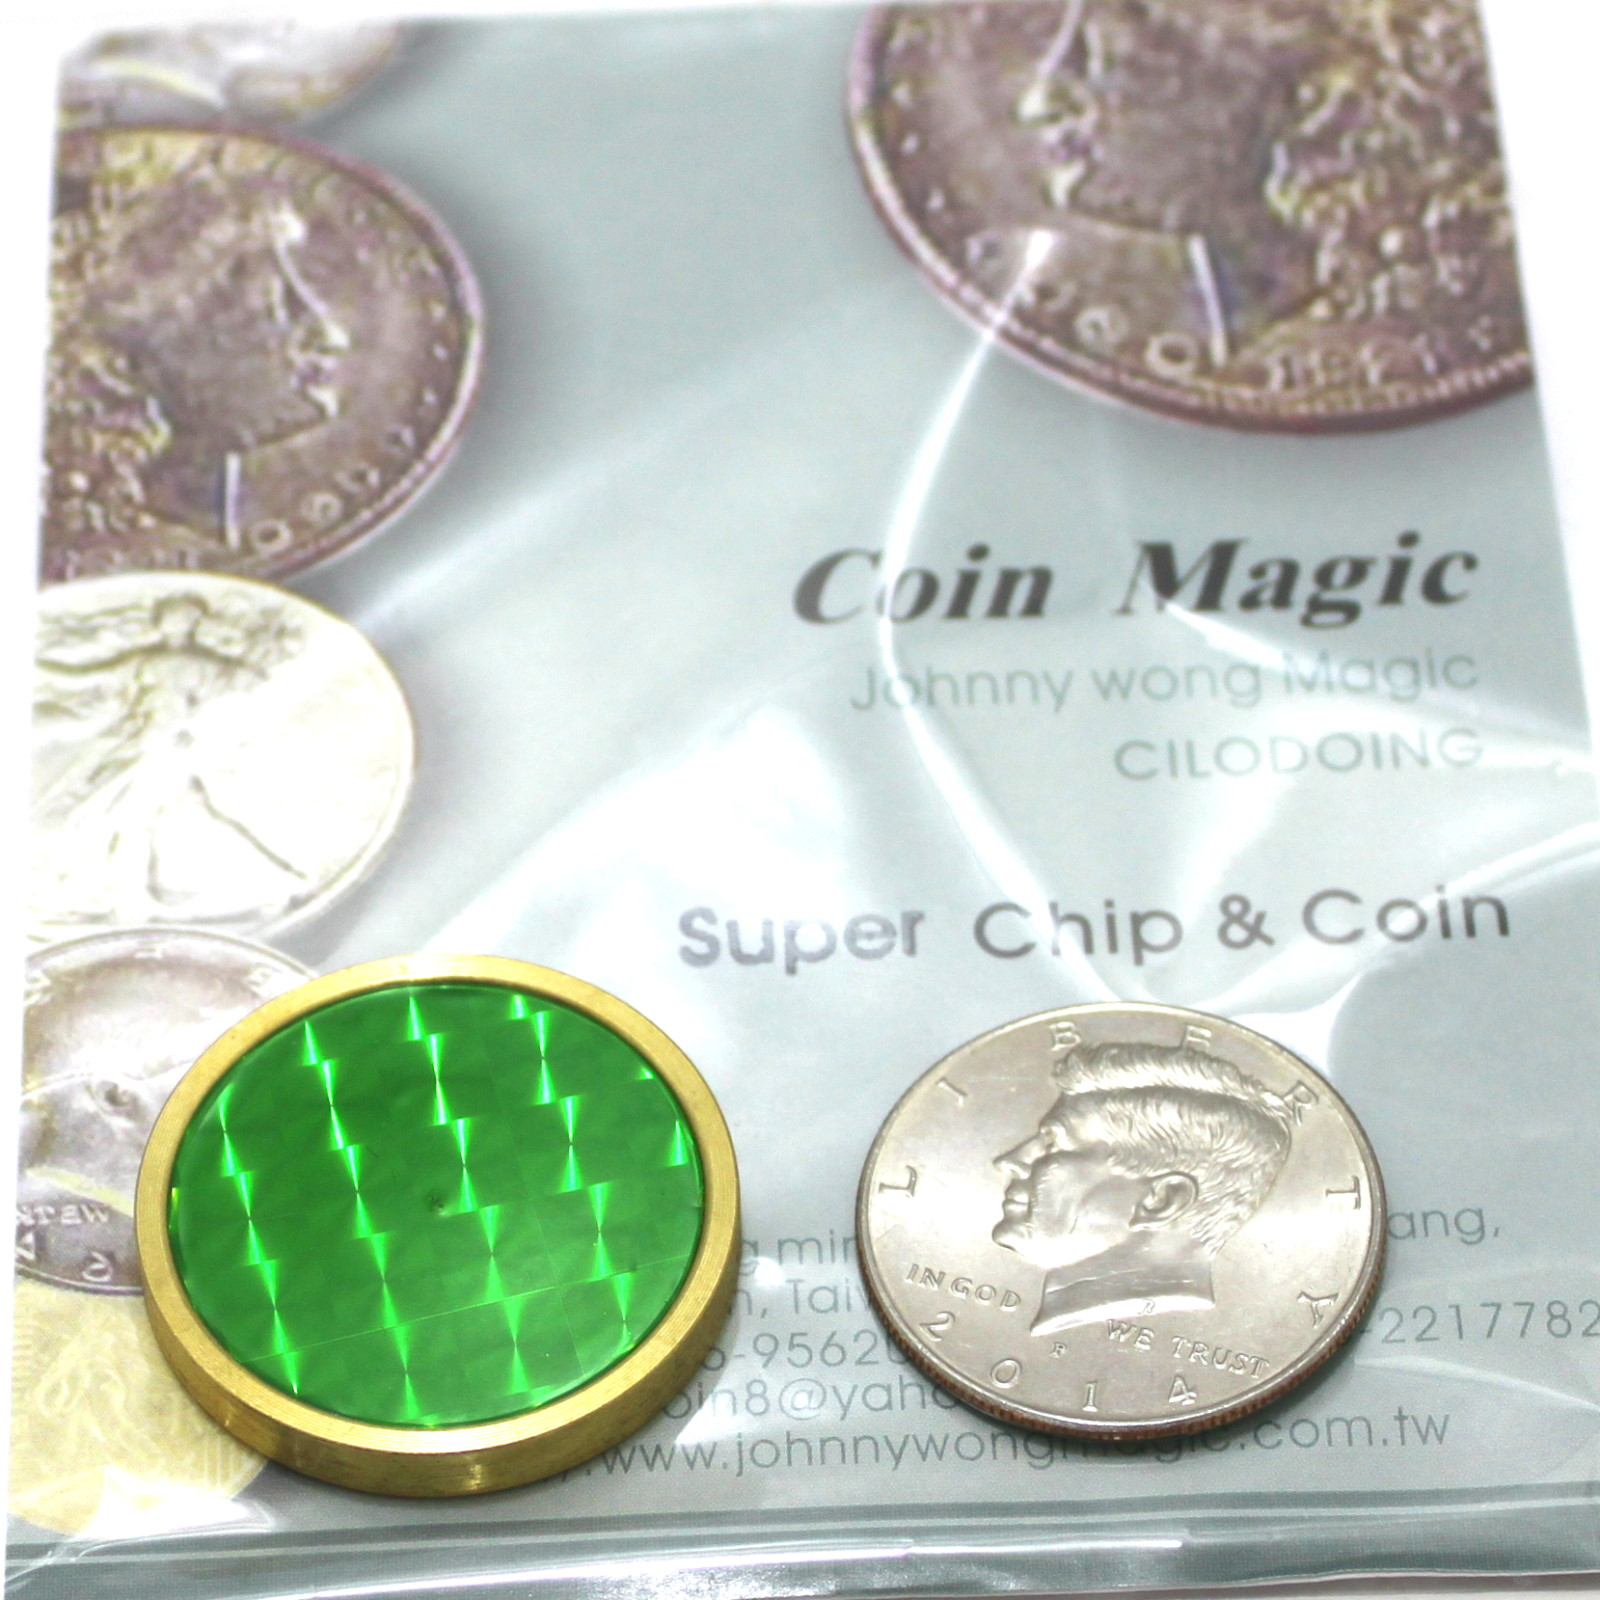 Super Chip and Coin by Johnny Wong